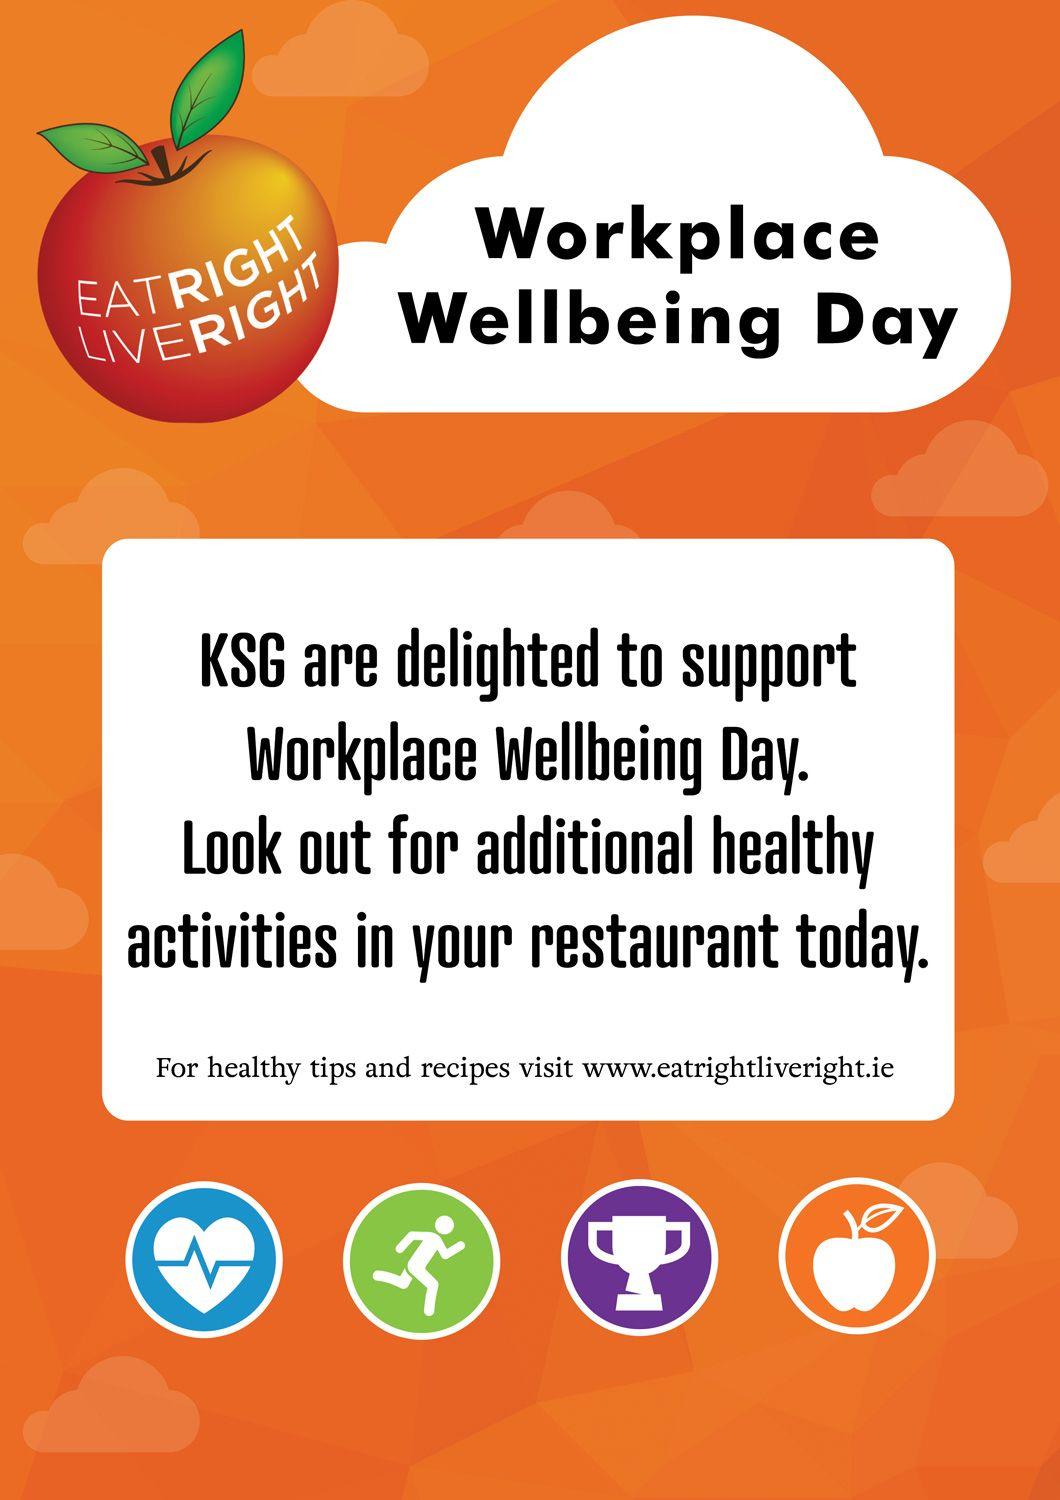 eat right live right campaign - workplace wellbeing day - poster